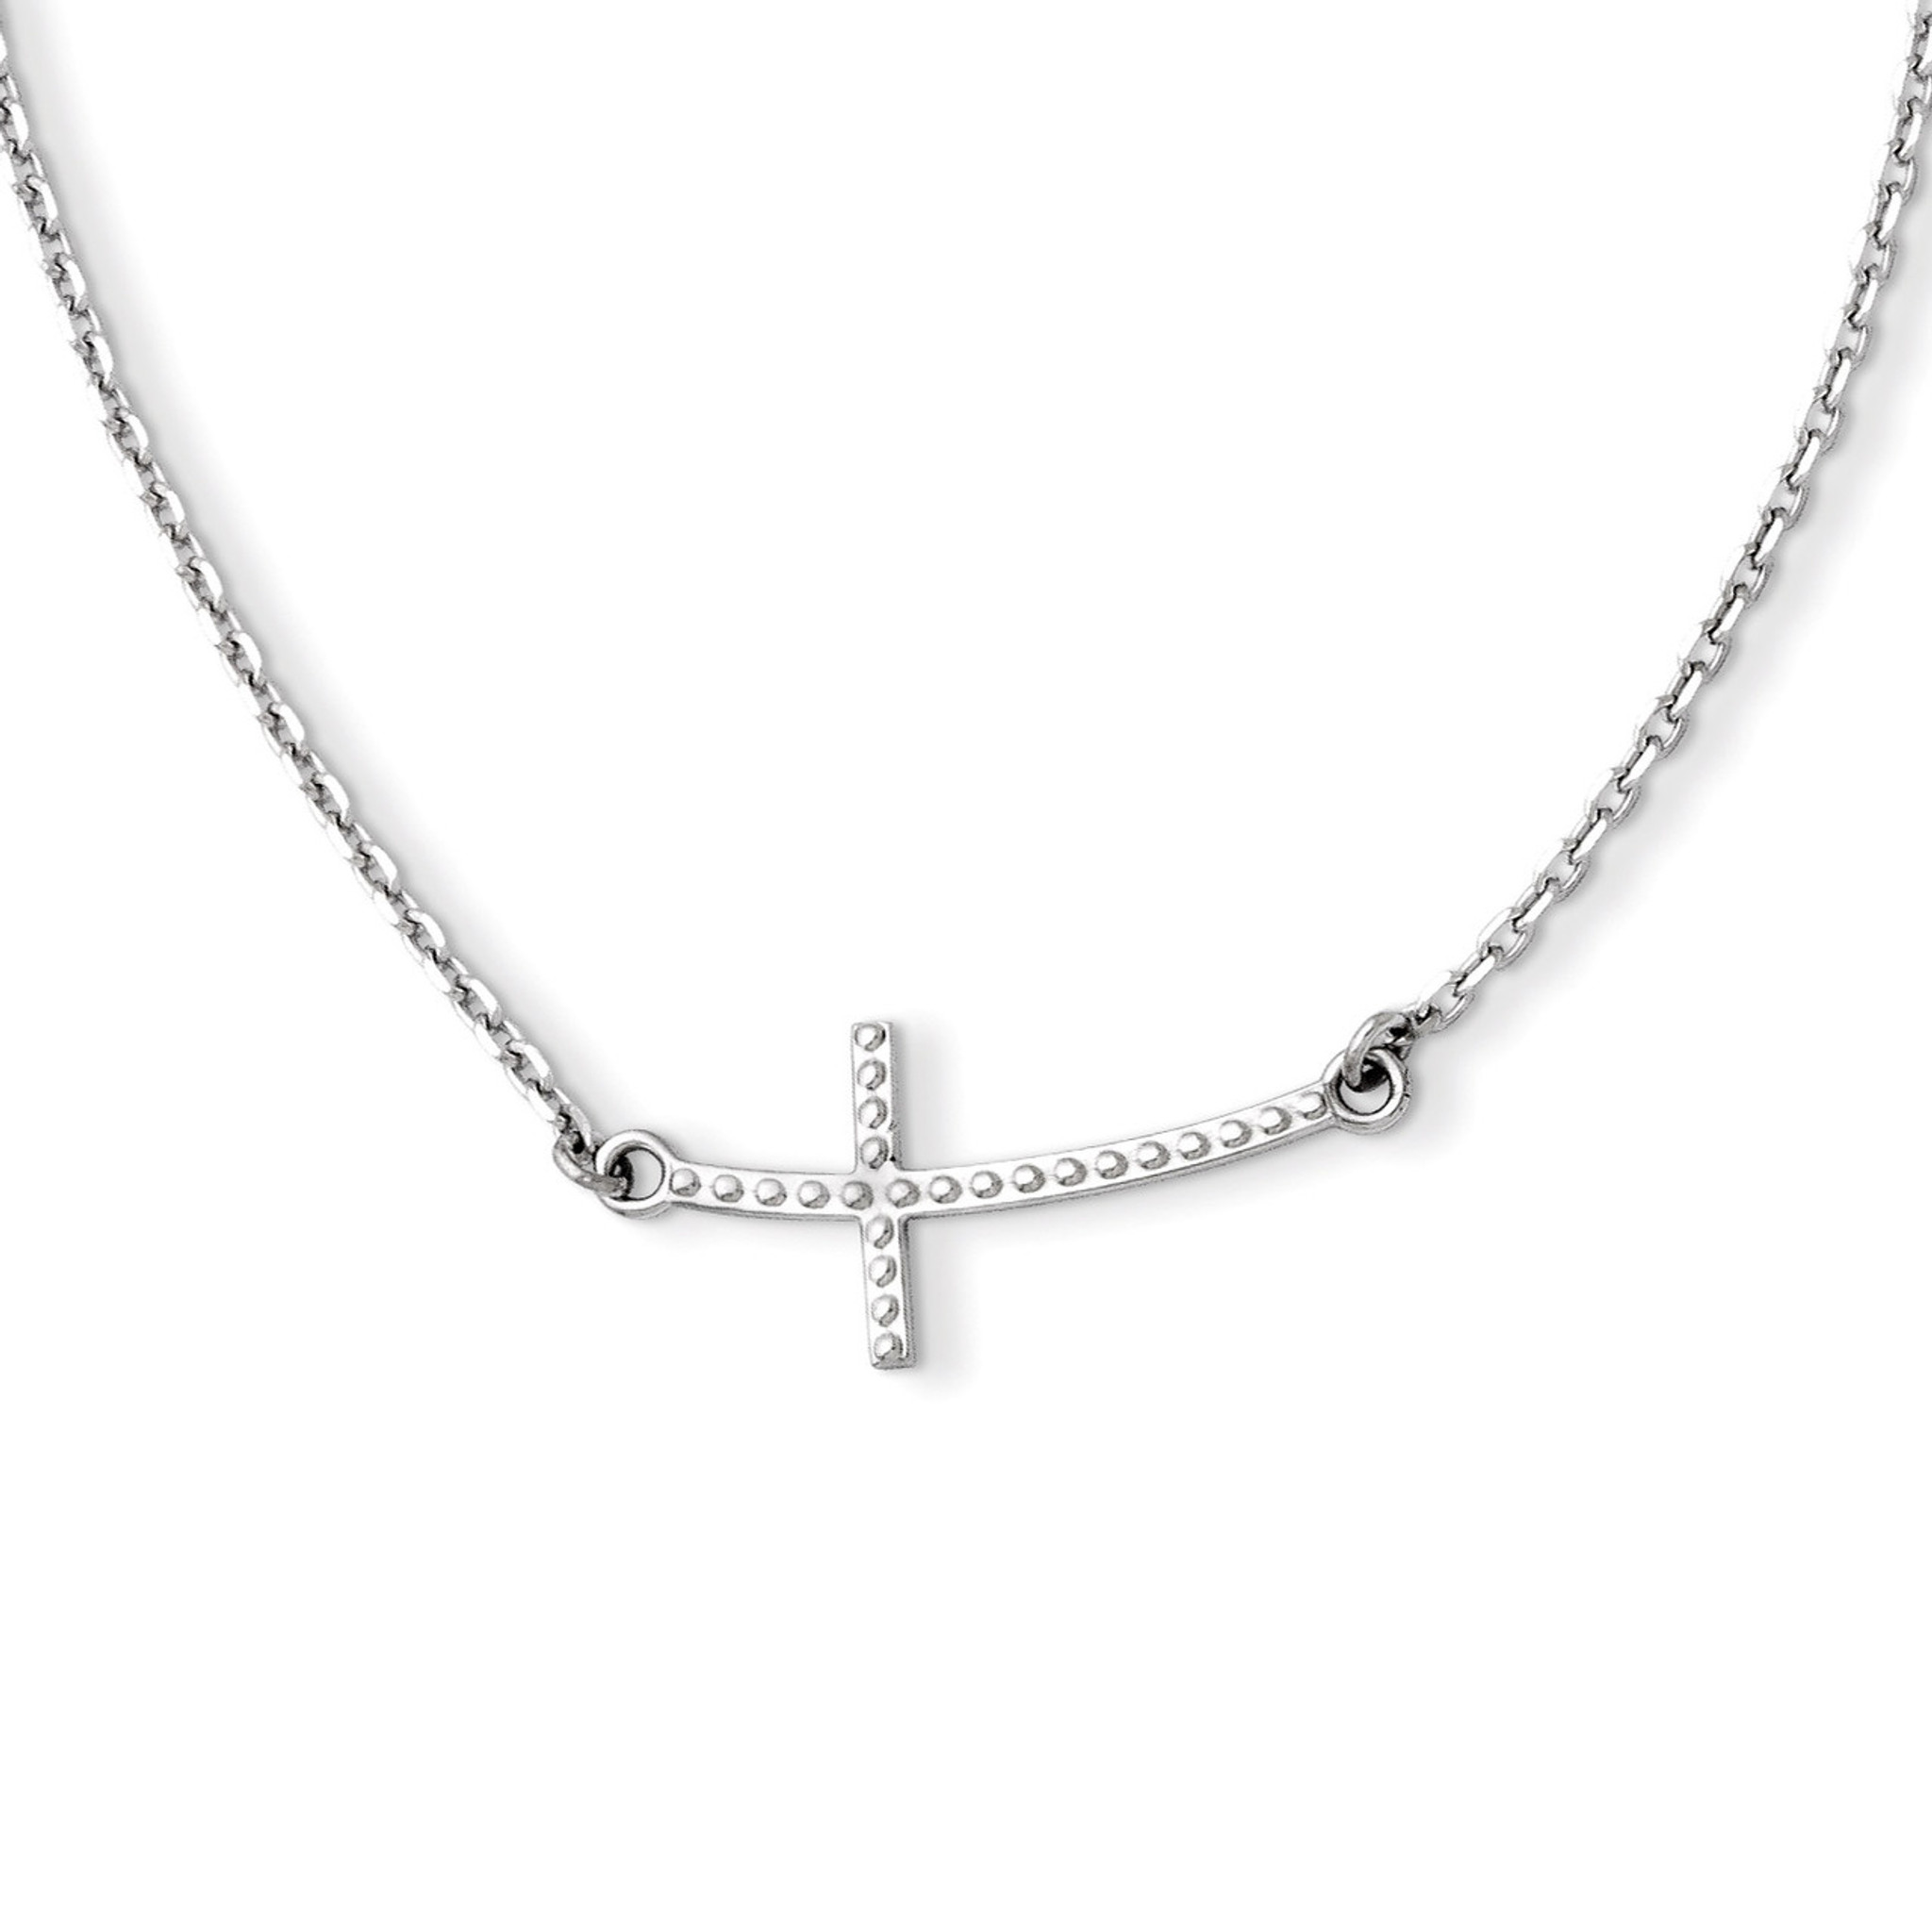 Sideways Curved Cross Necklace: Sideways Curved Textured Cross Necklace 14k White Gold